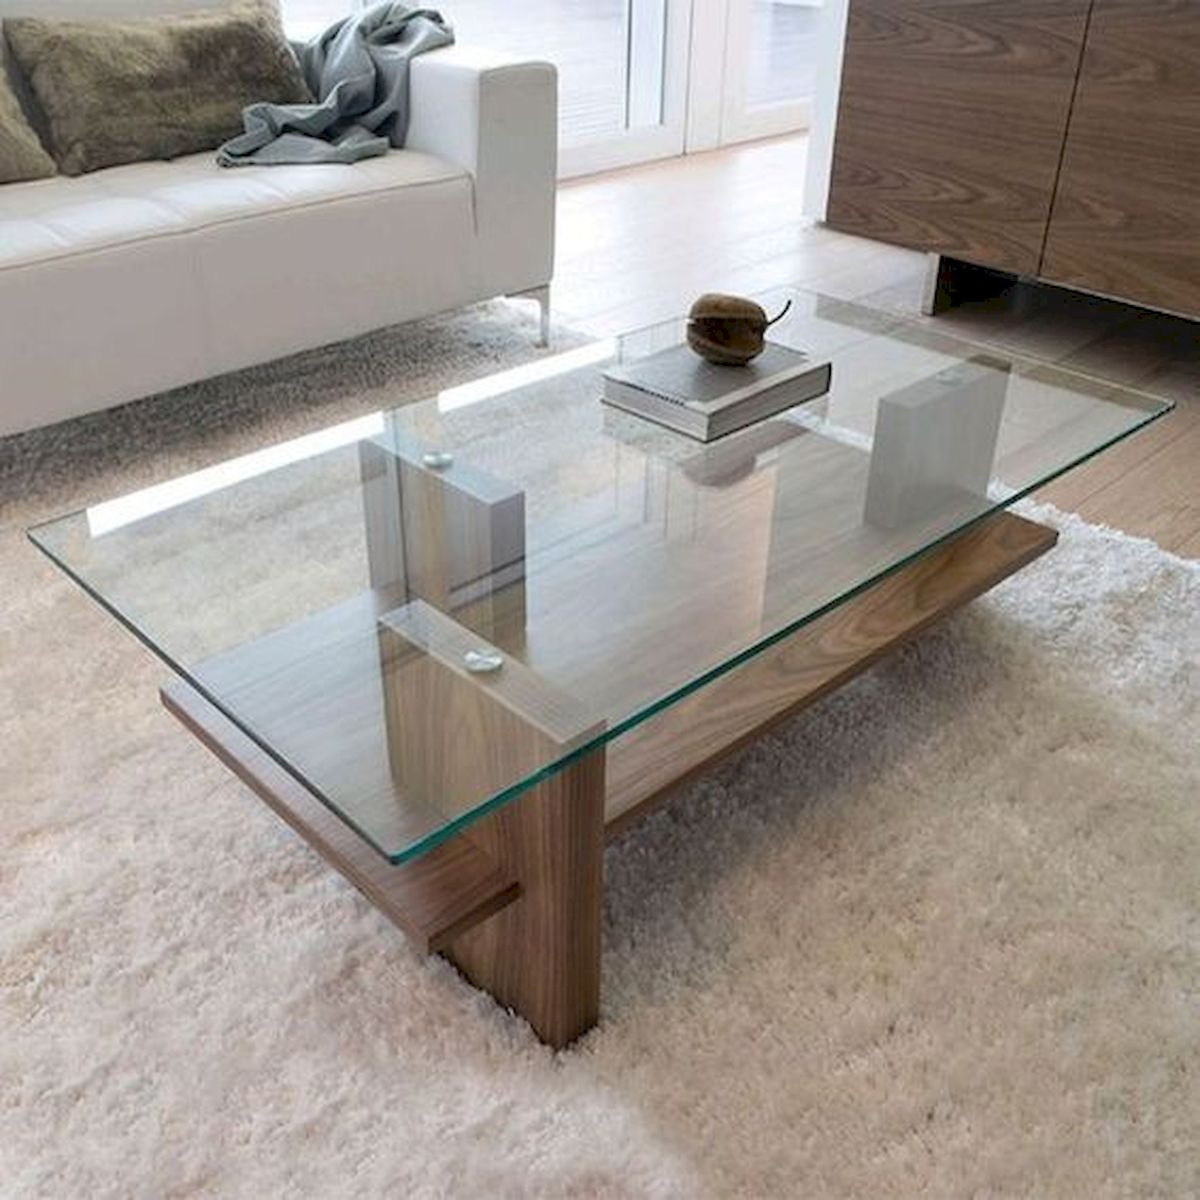 40 Awesome Modern Glass Coffee Table Design Ideas For Your Living Room (18)